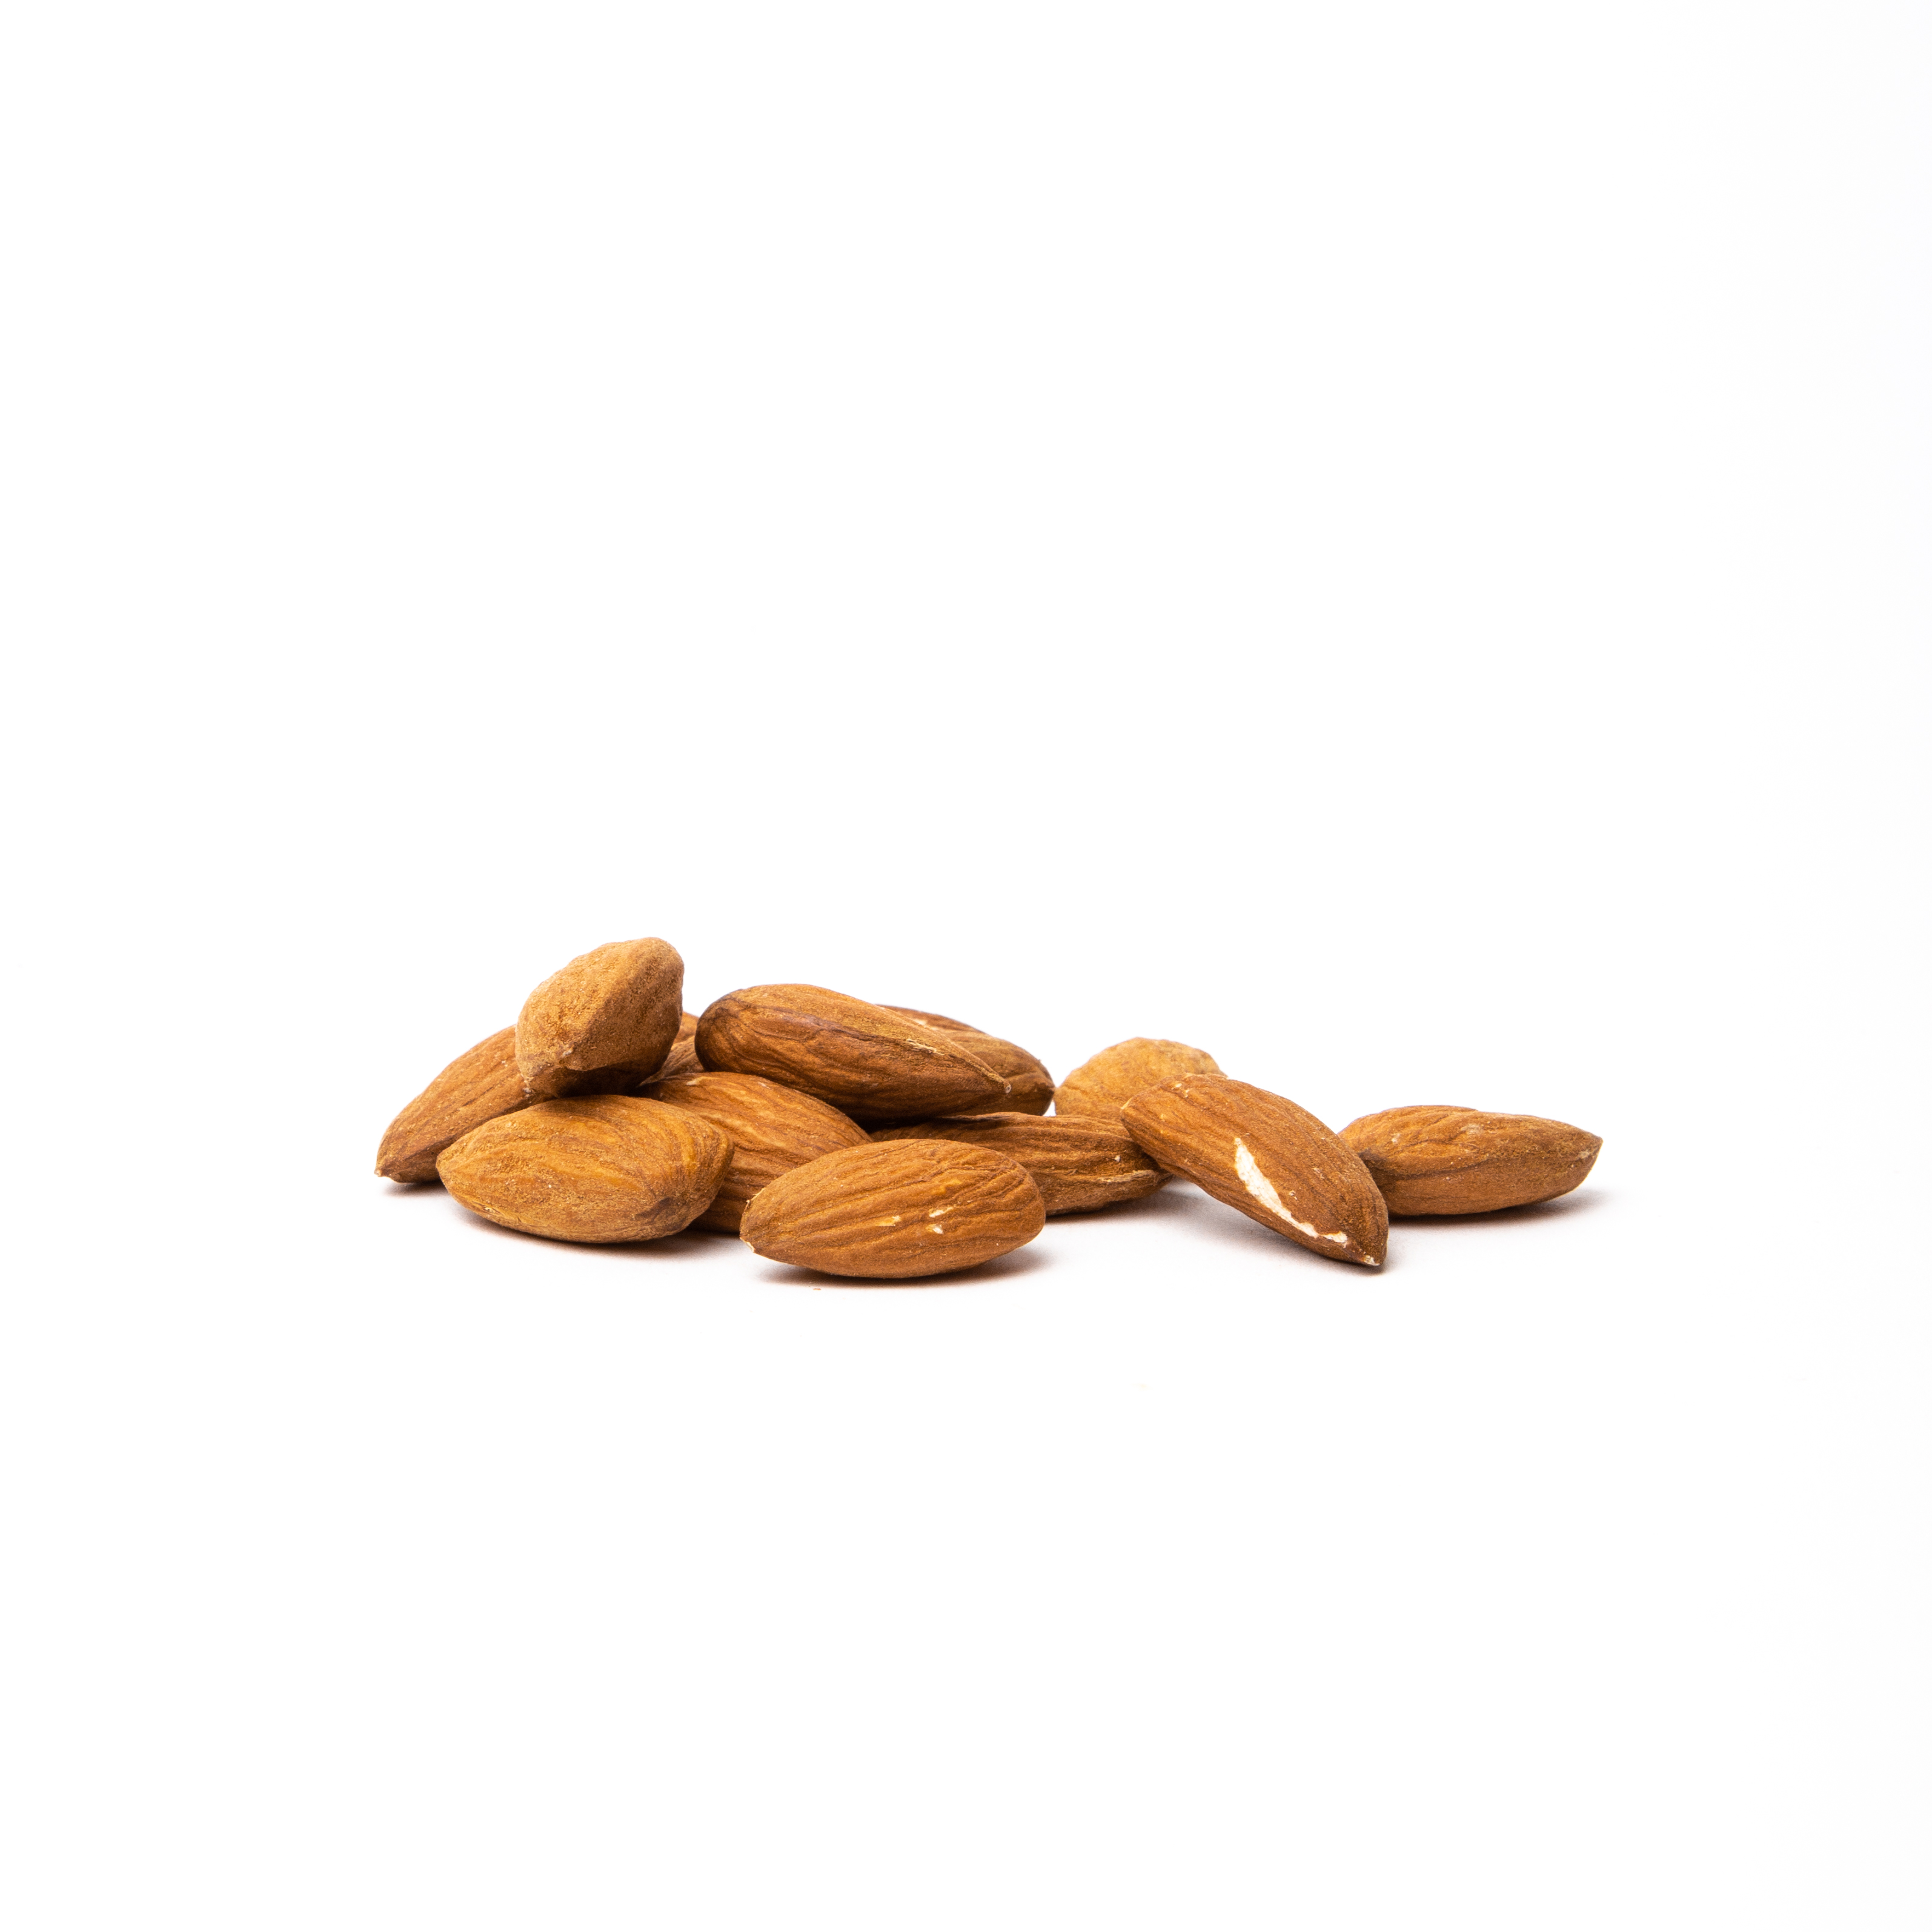 Almonds: Whole Unroasted